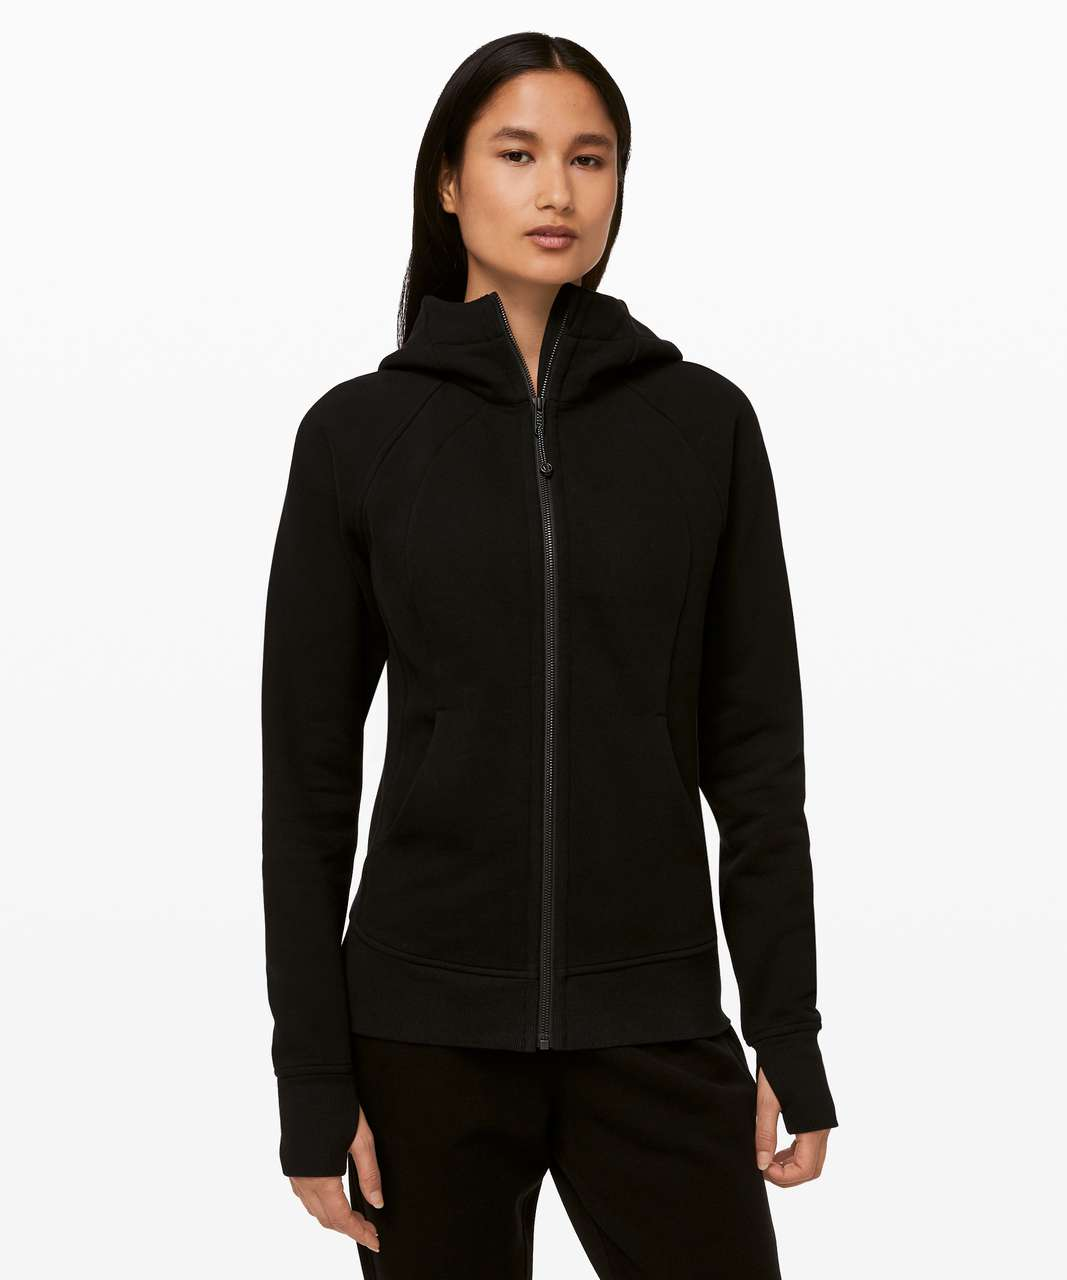 Lululemon Scuba Hoodie *Light Cotton Fleece - Black